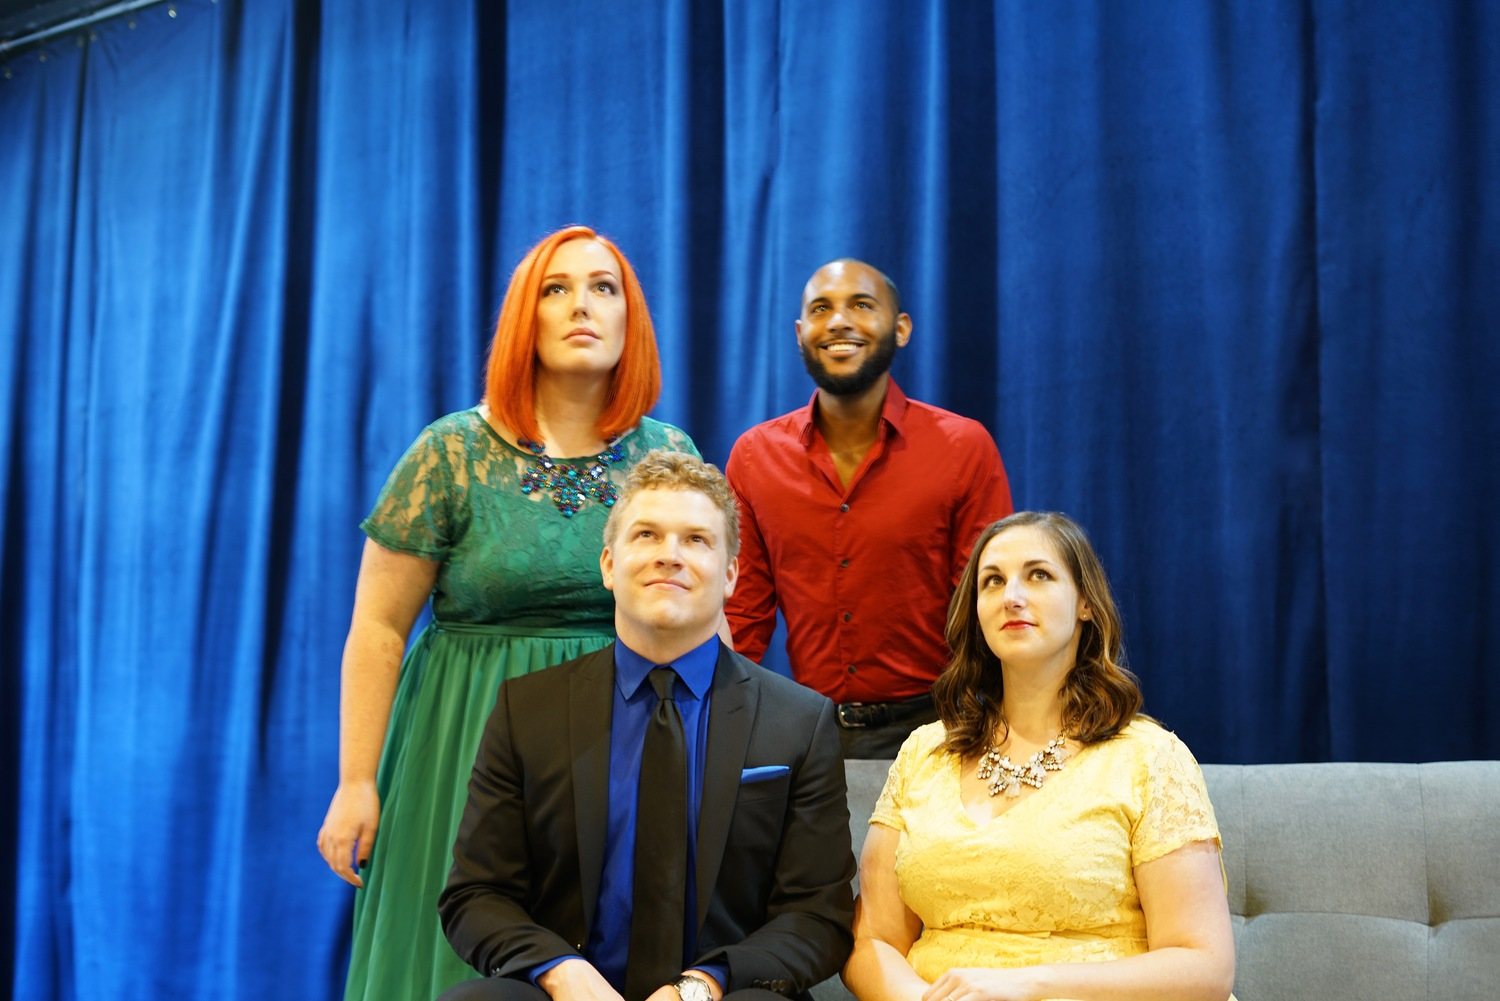 BWW Interview: Tamara Marla Laflin of SONGS FOR A NEW WORLD at Southgate Community Players says the Songs Will Hit Audiences with a Wide Range of Emotions!